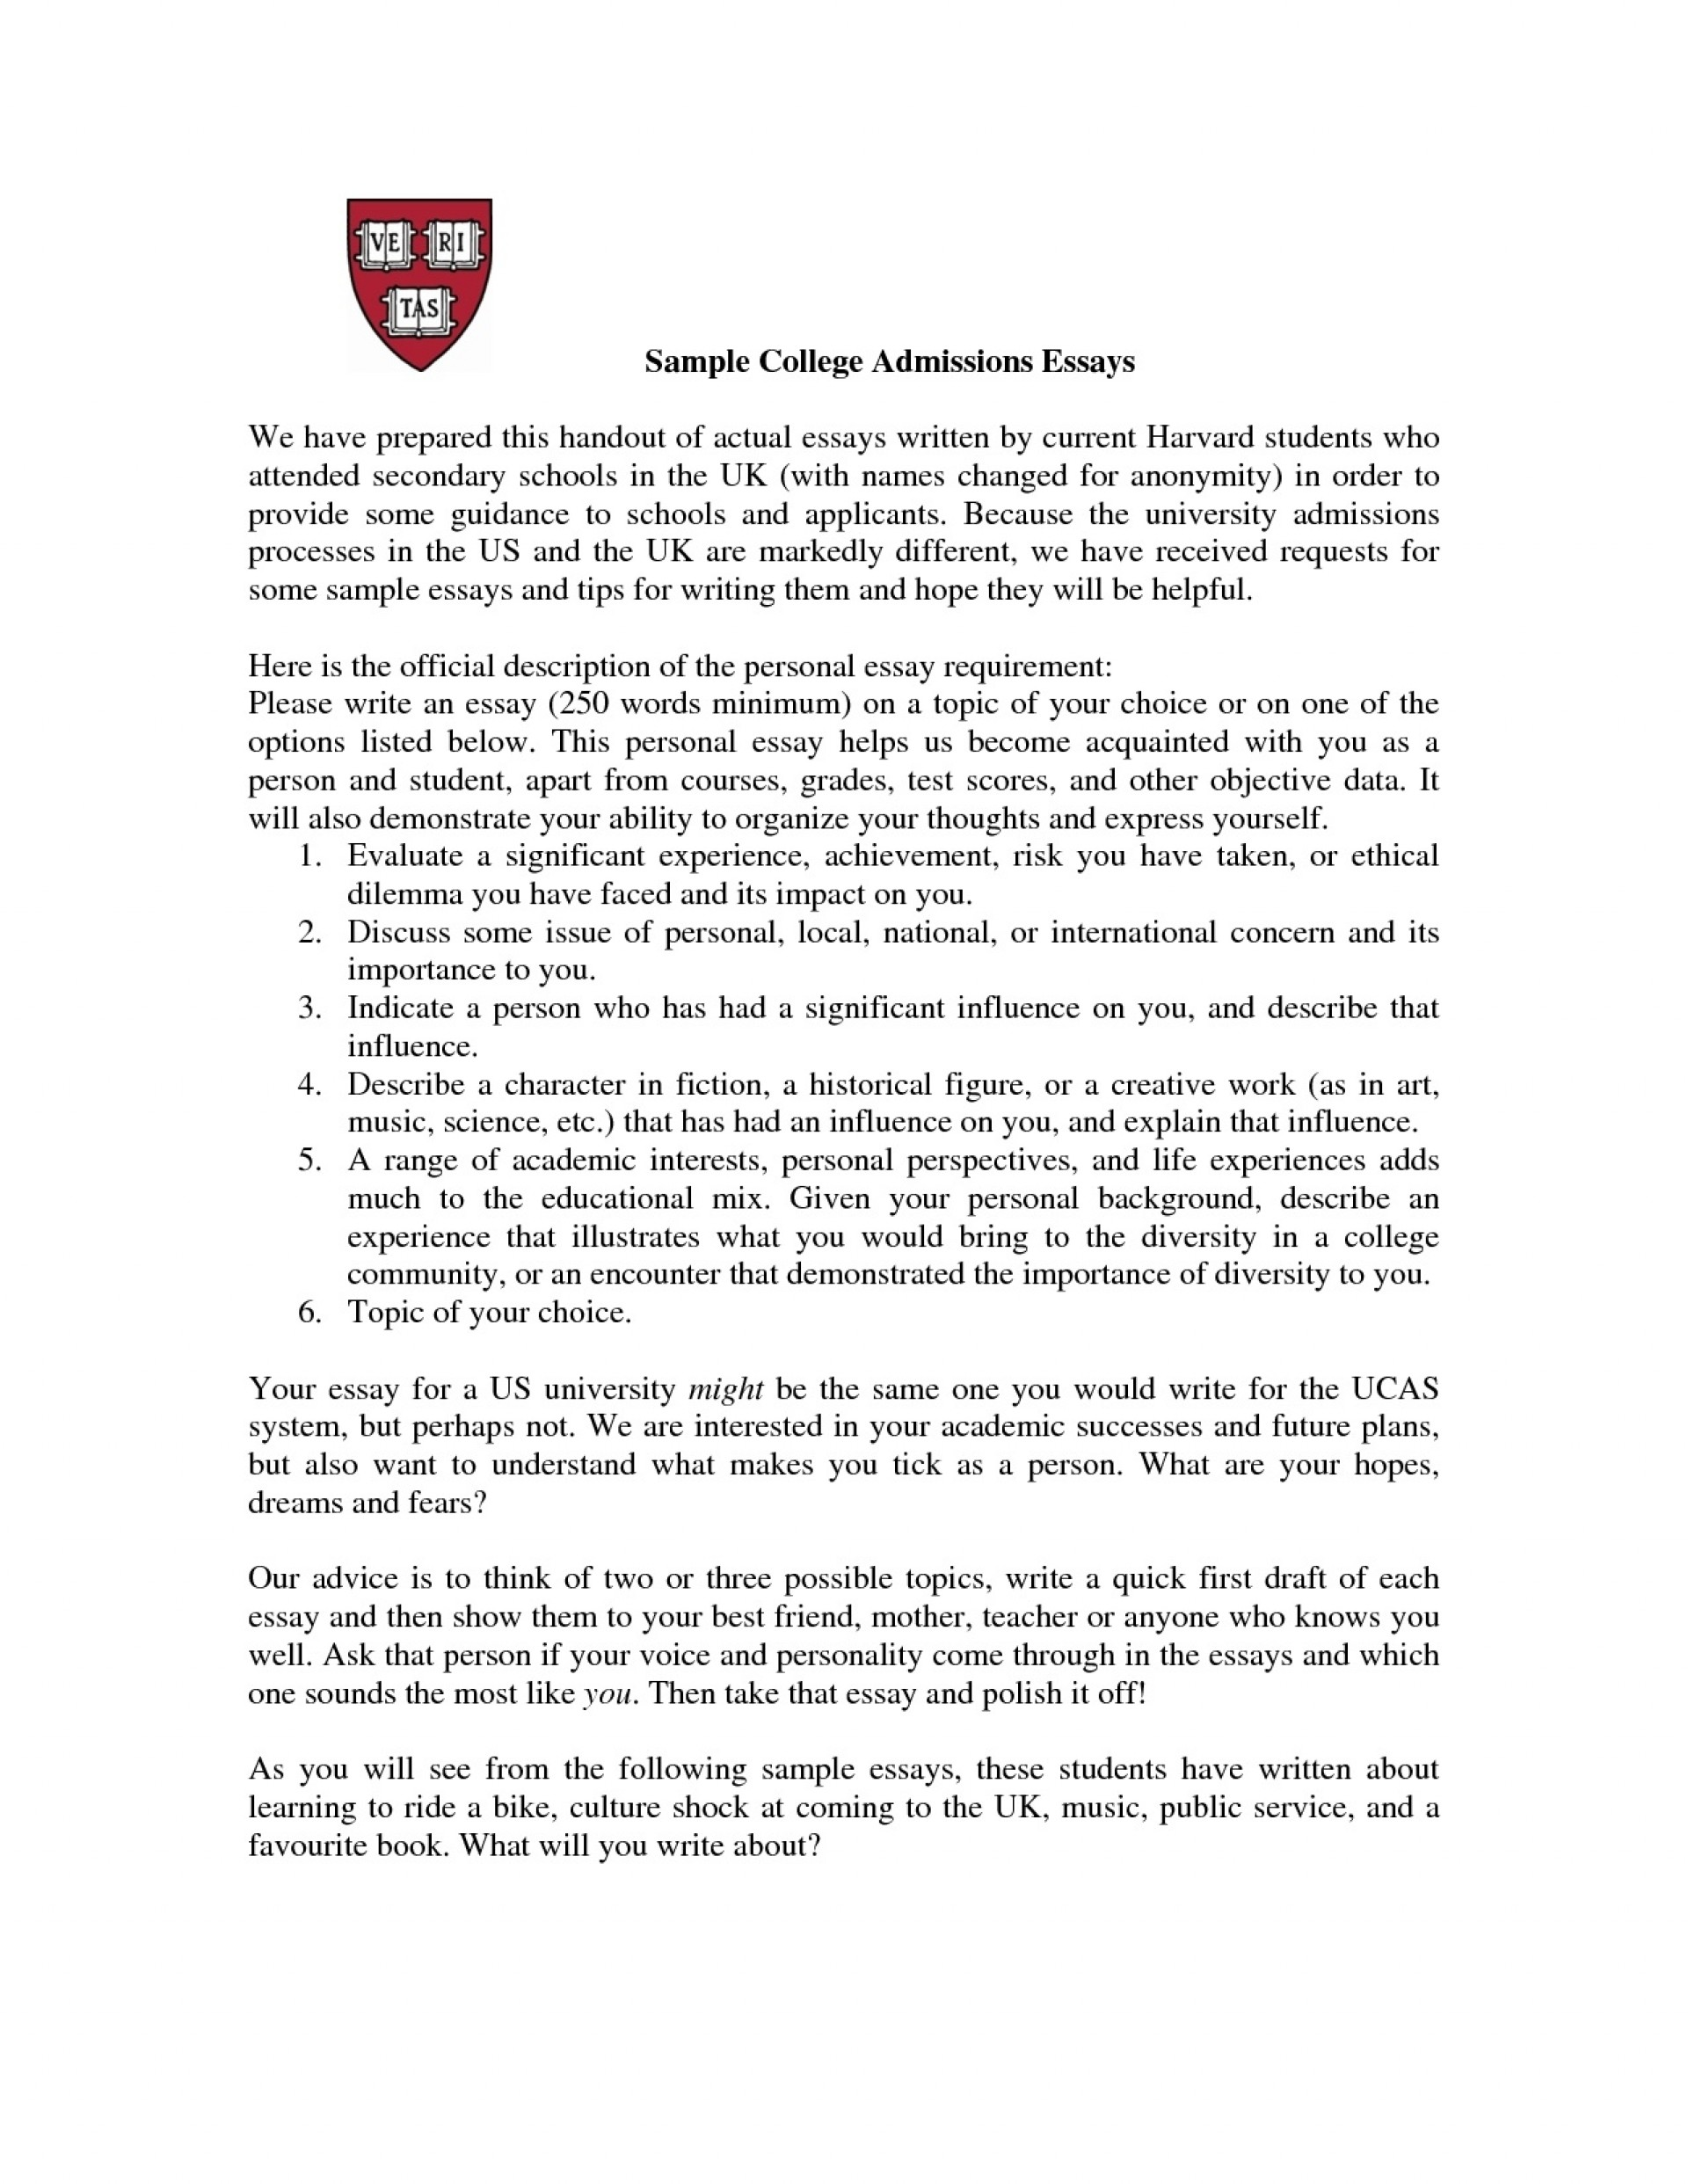 005 Application Essay Examples College Example Writings And Essays Temple Universitymission Sample Transfer Common Topic With Regard Of Texas Samples Florida State Liberty Astounding Ucf University High School 1920